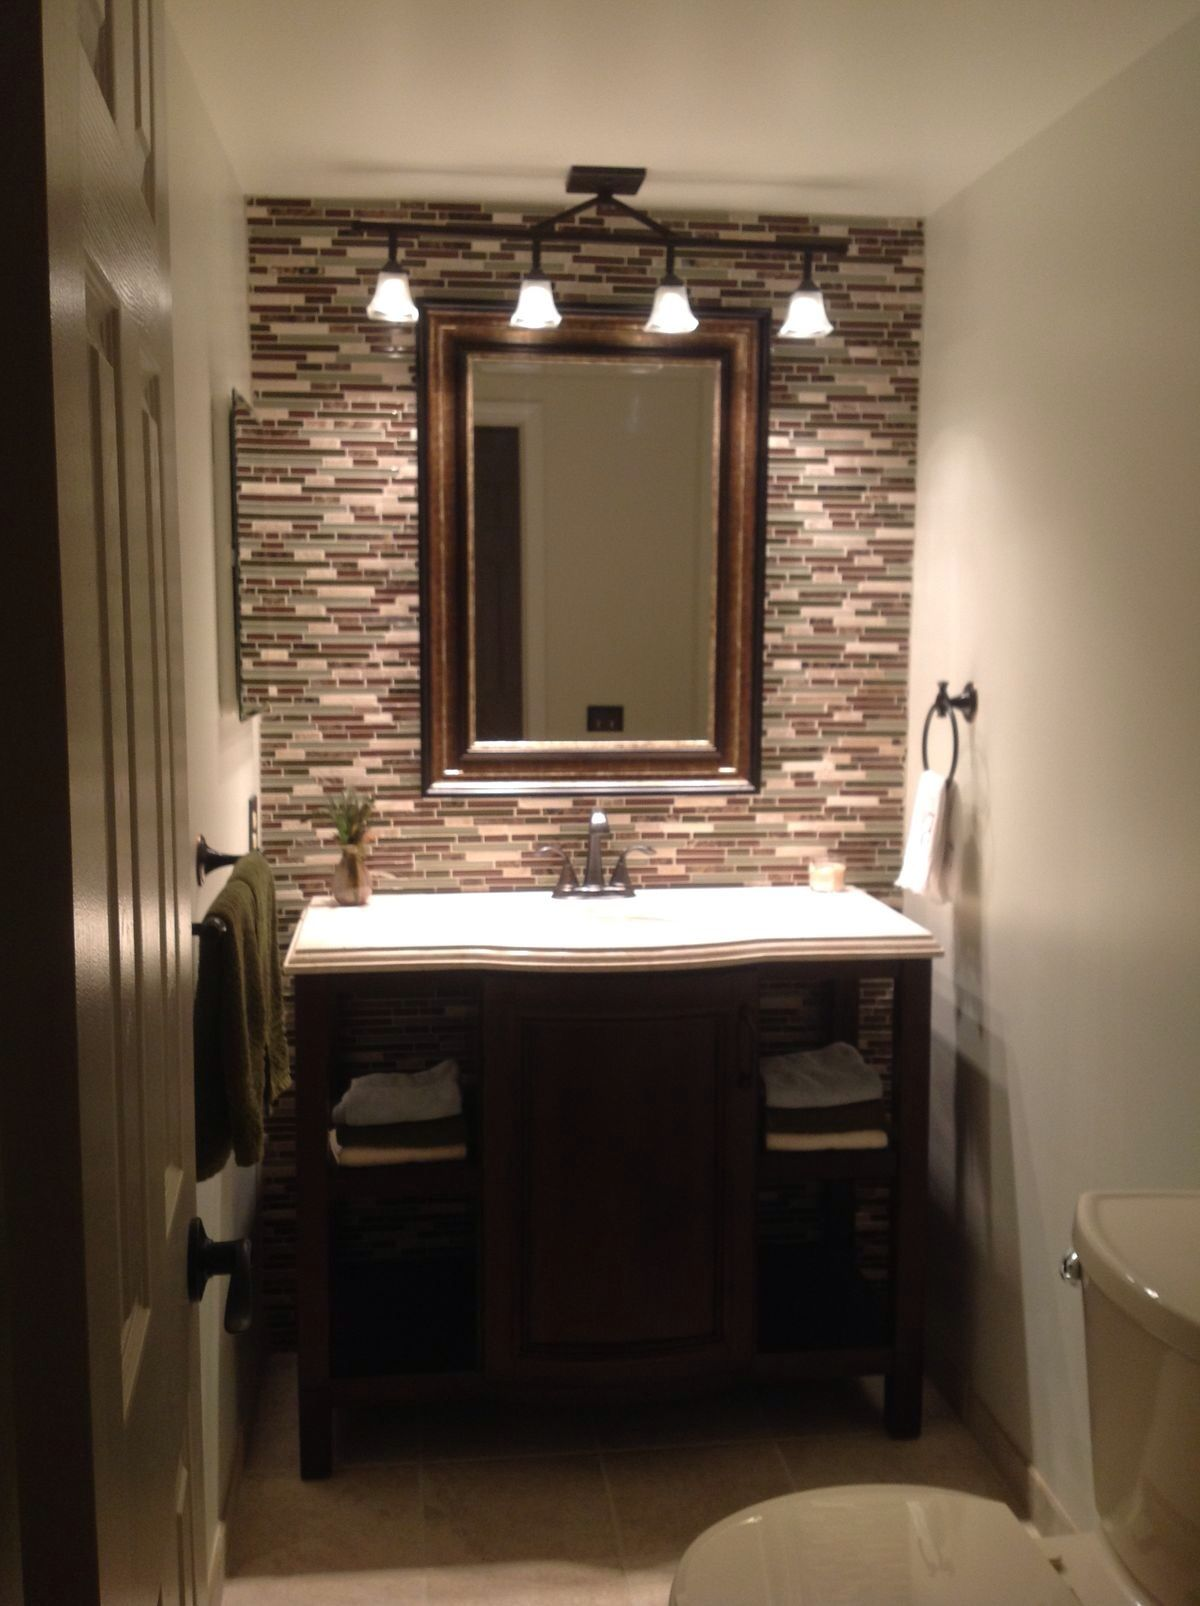 Merveilleux These Half Bathroom Remodeling Ideas Can Inspire A Transformation That Is  Sure To Impress Guests And